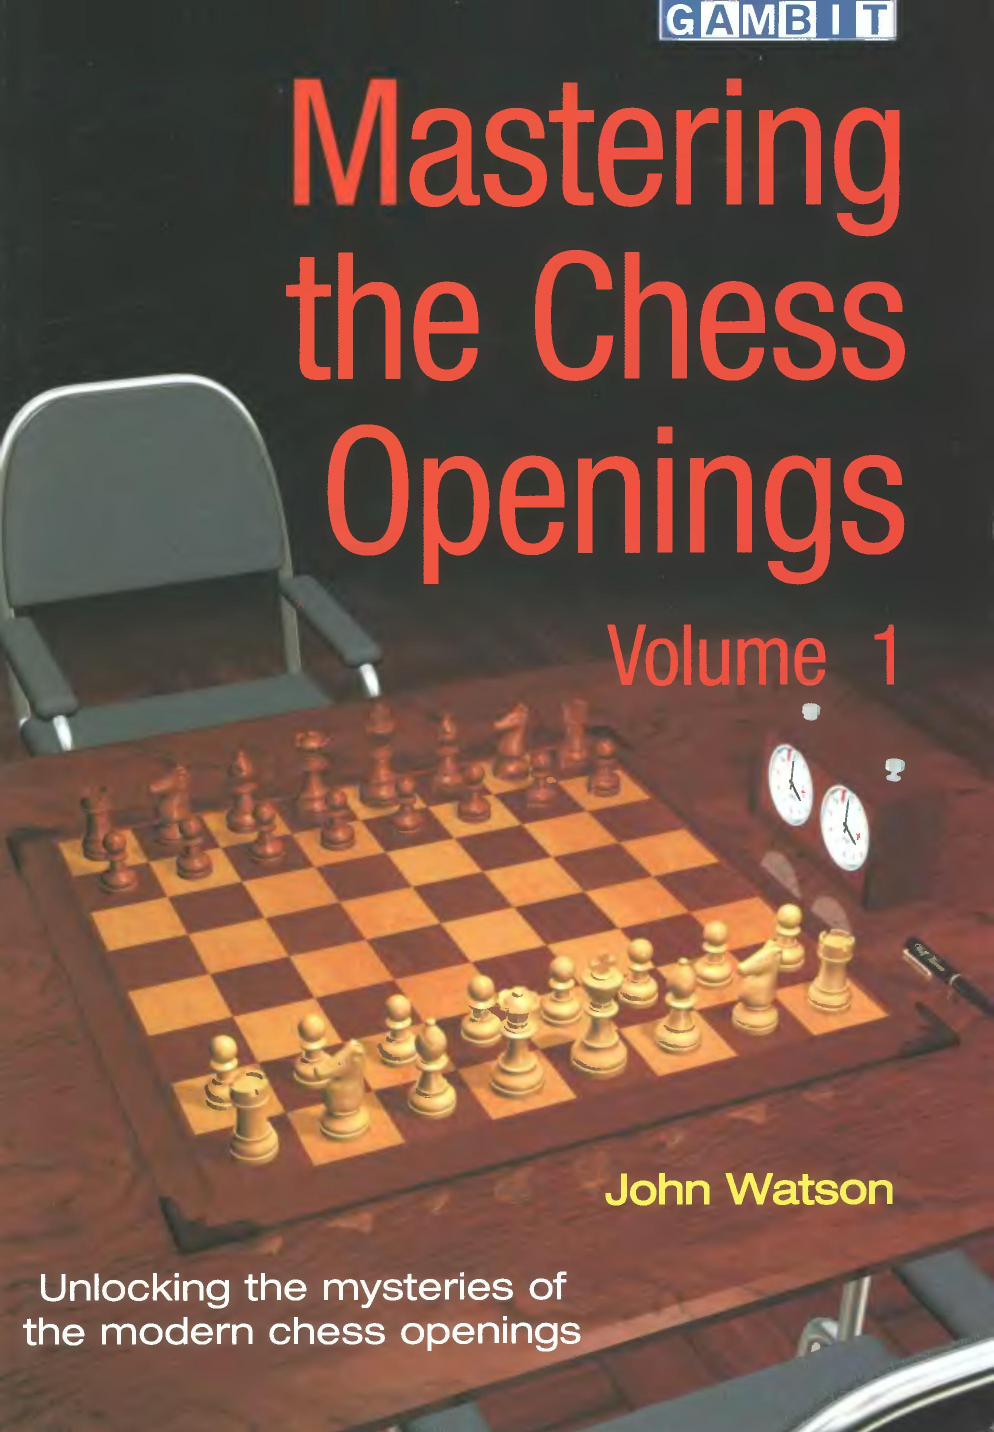 Mastering the Chess Openings Vol 1